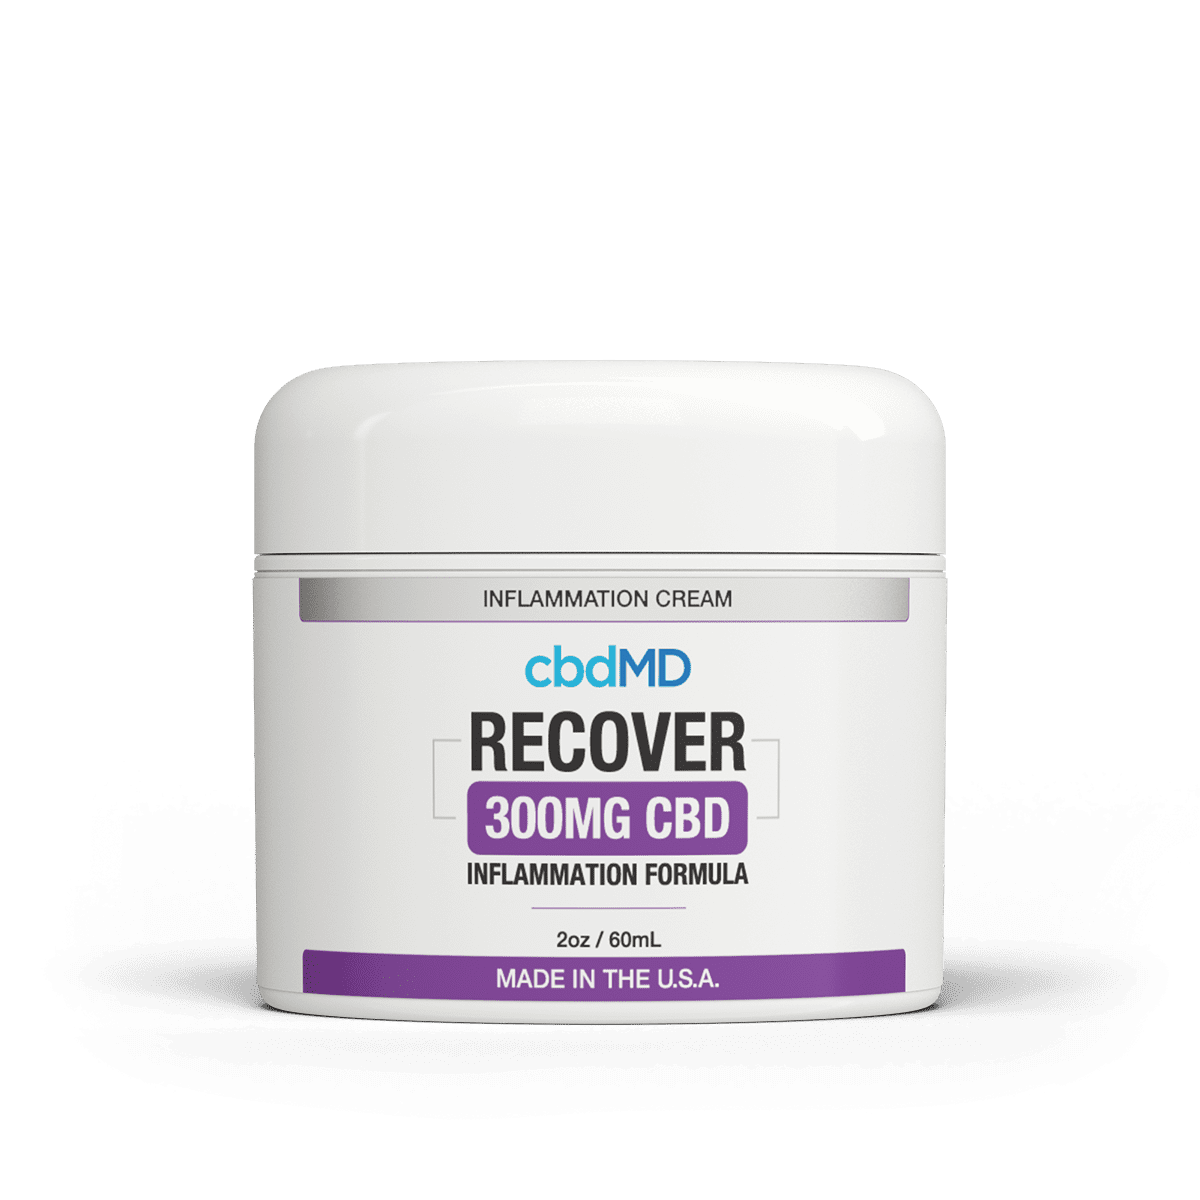 cbdMD CBD Recover Inflammation Cream Bottle